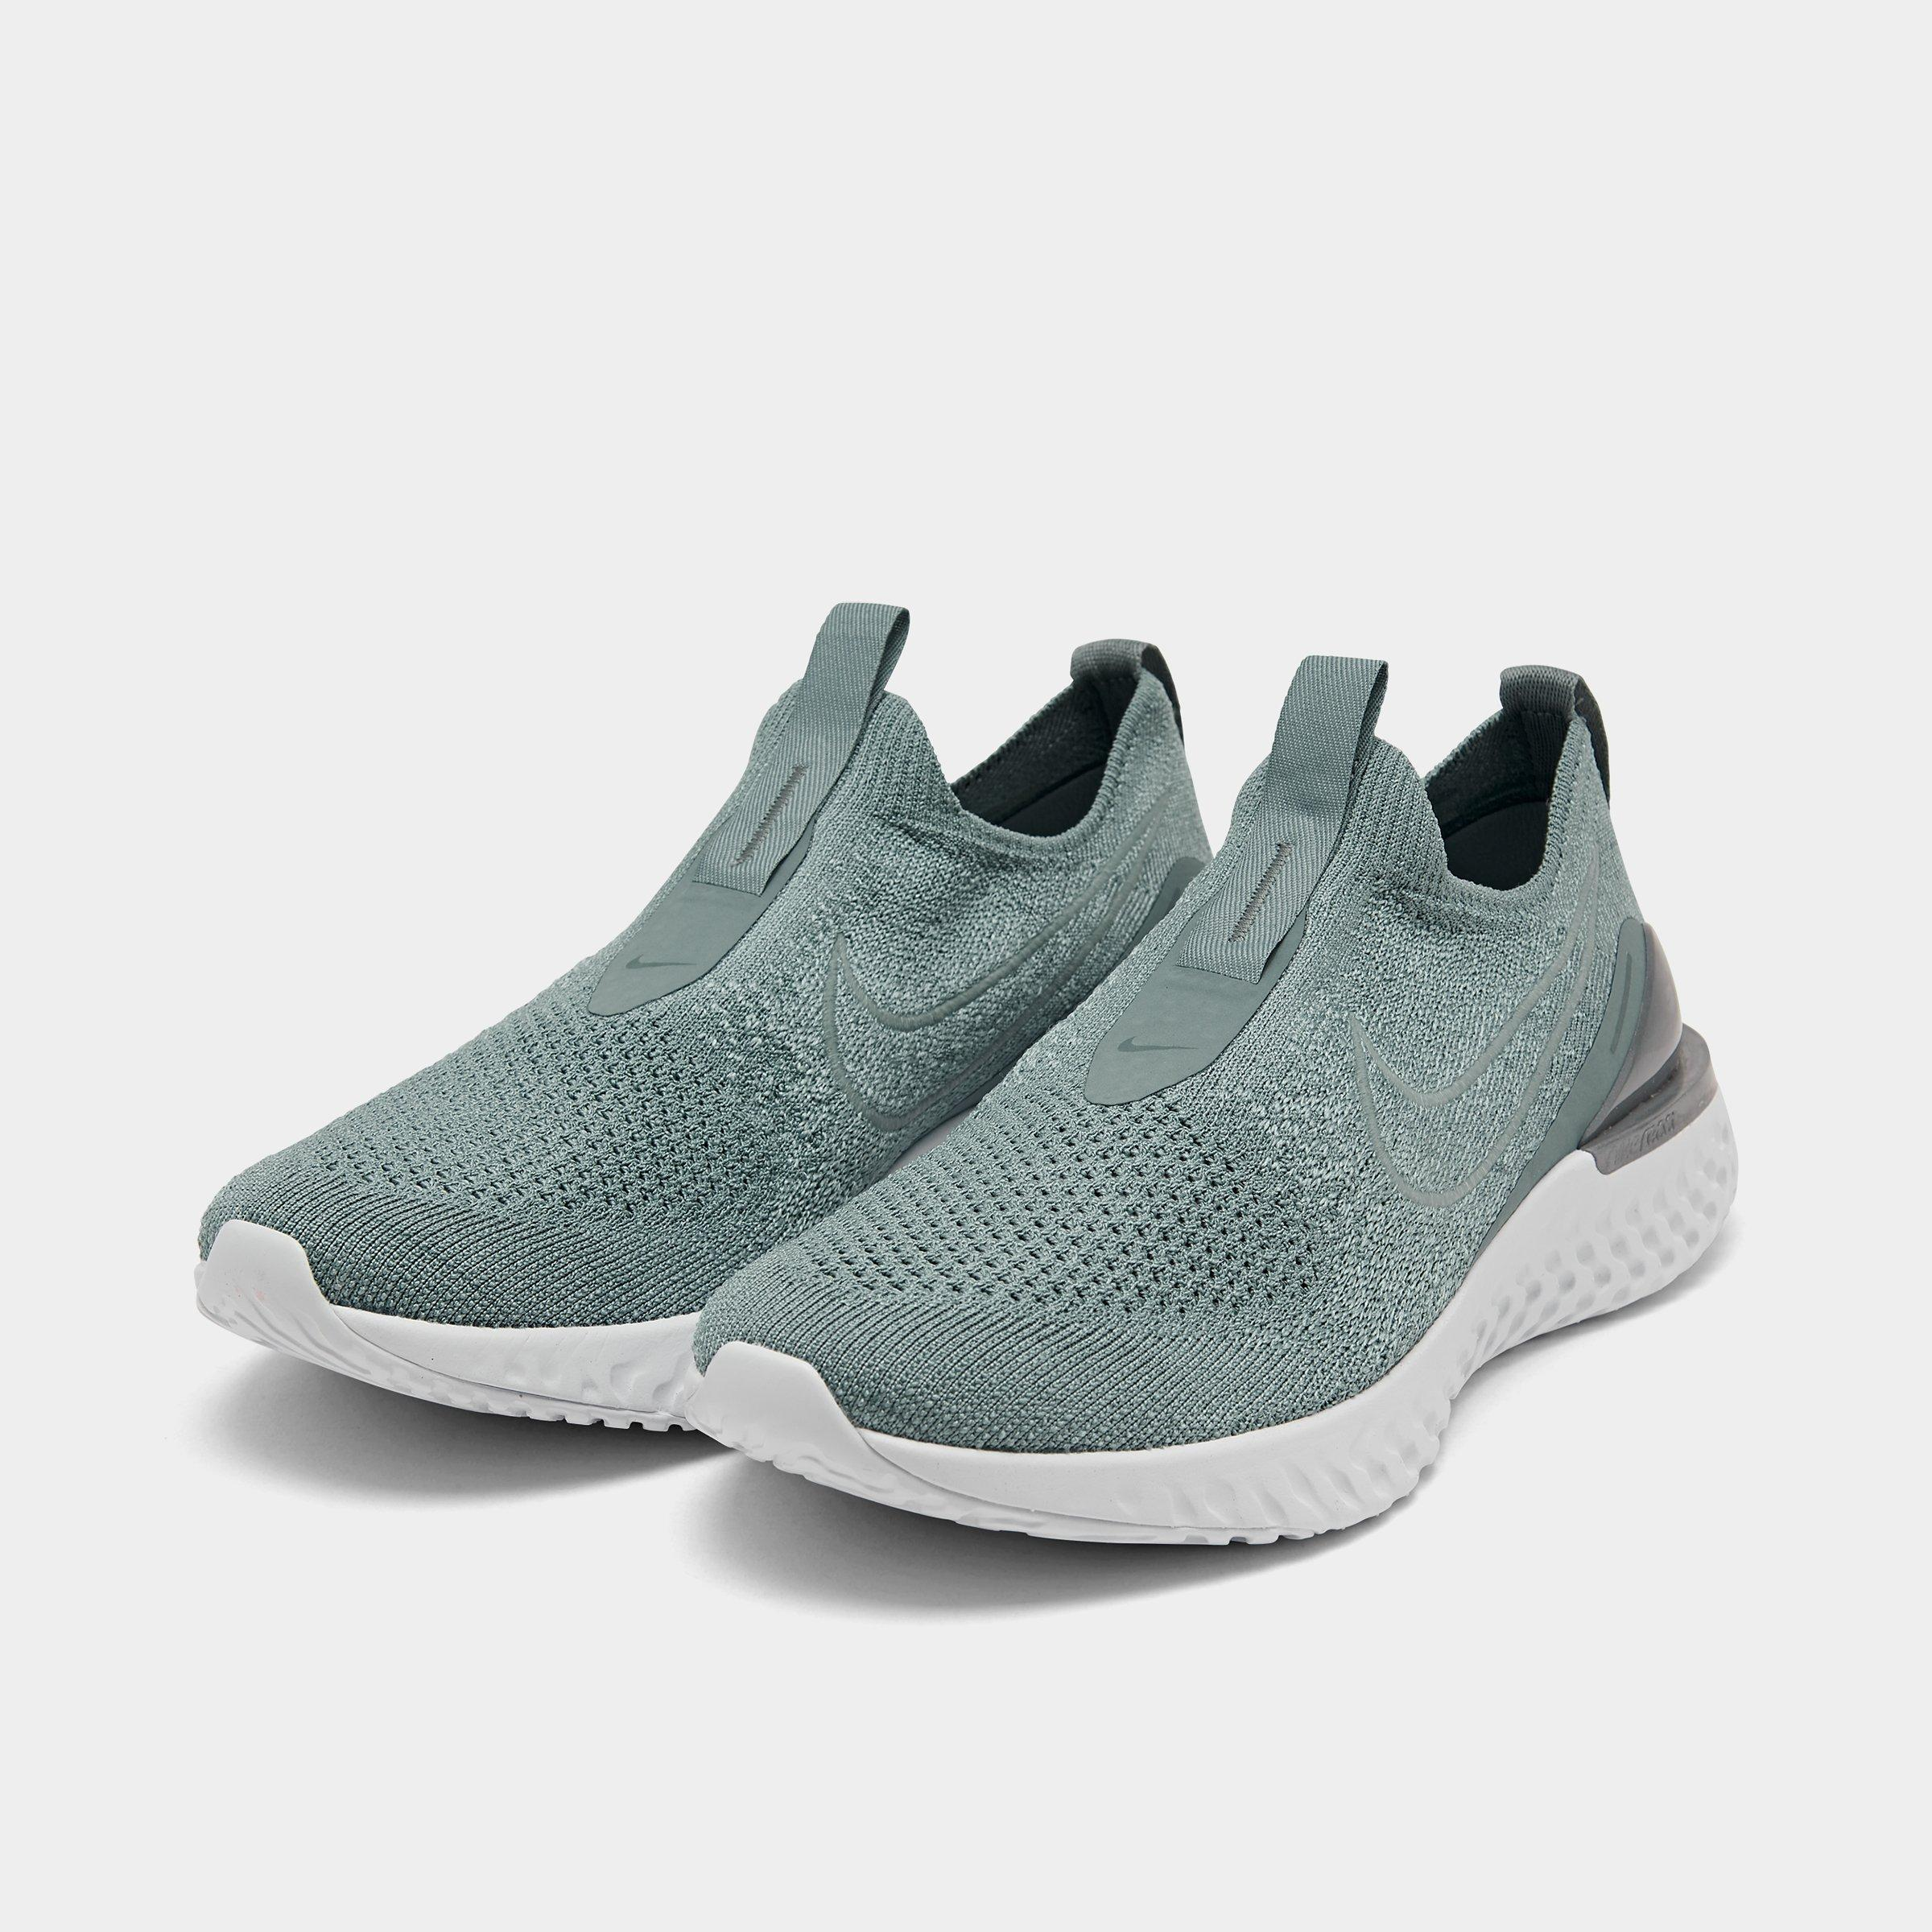 BV0415-200 Nike Epic Phantom React Flyknit Women/'s Running Shoes